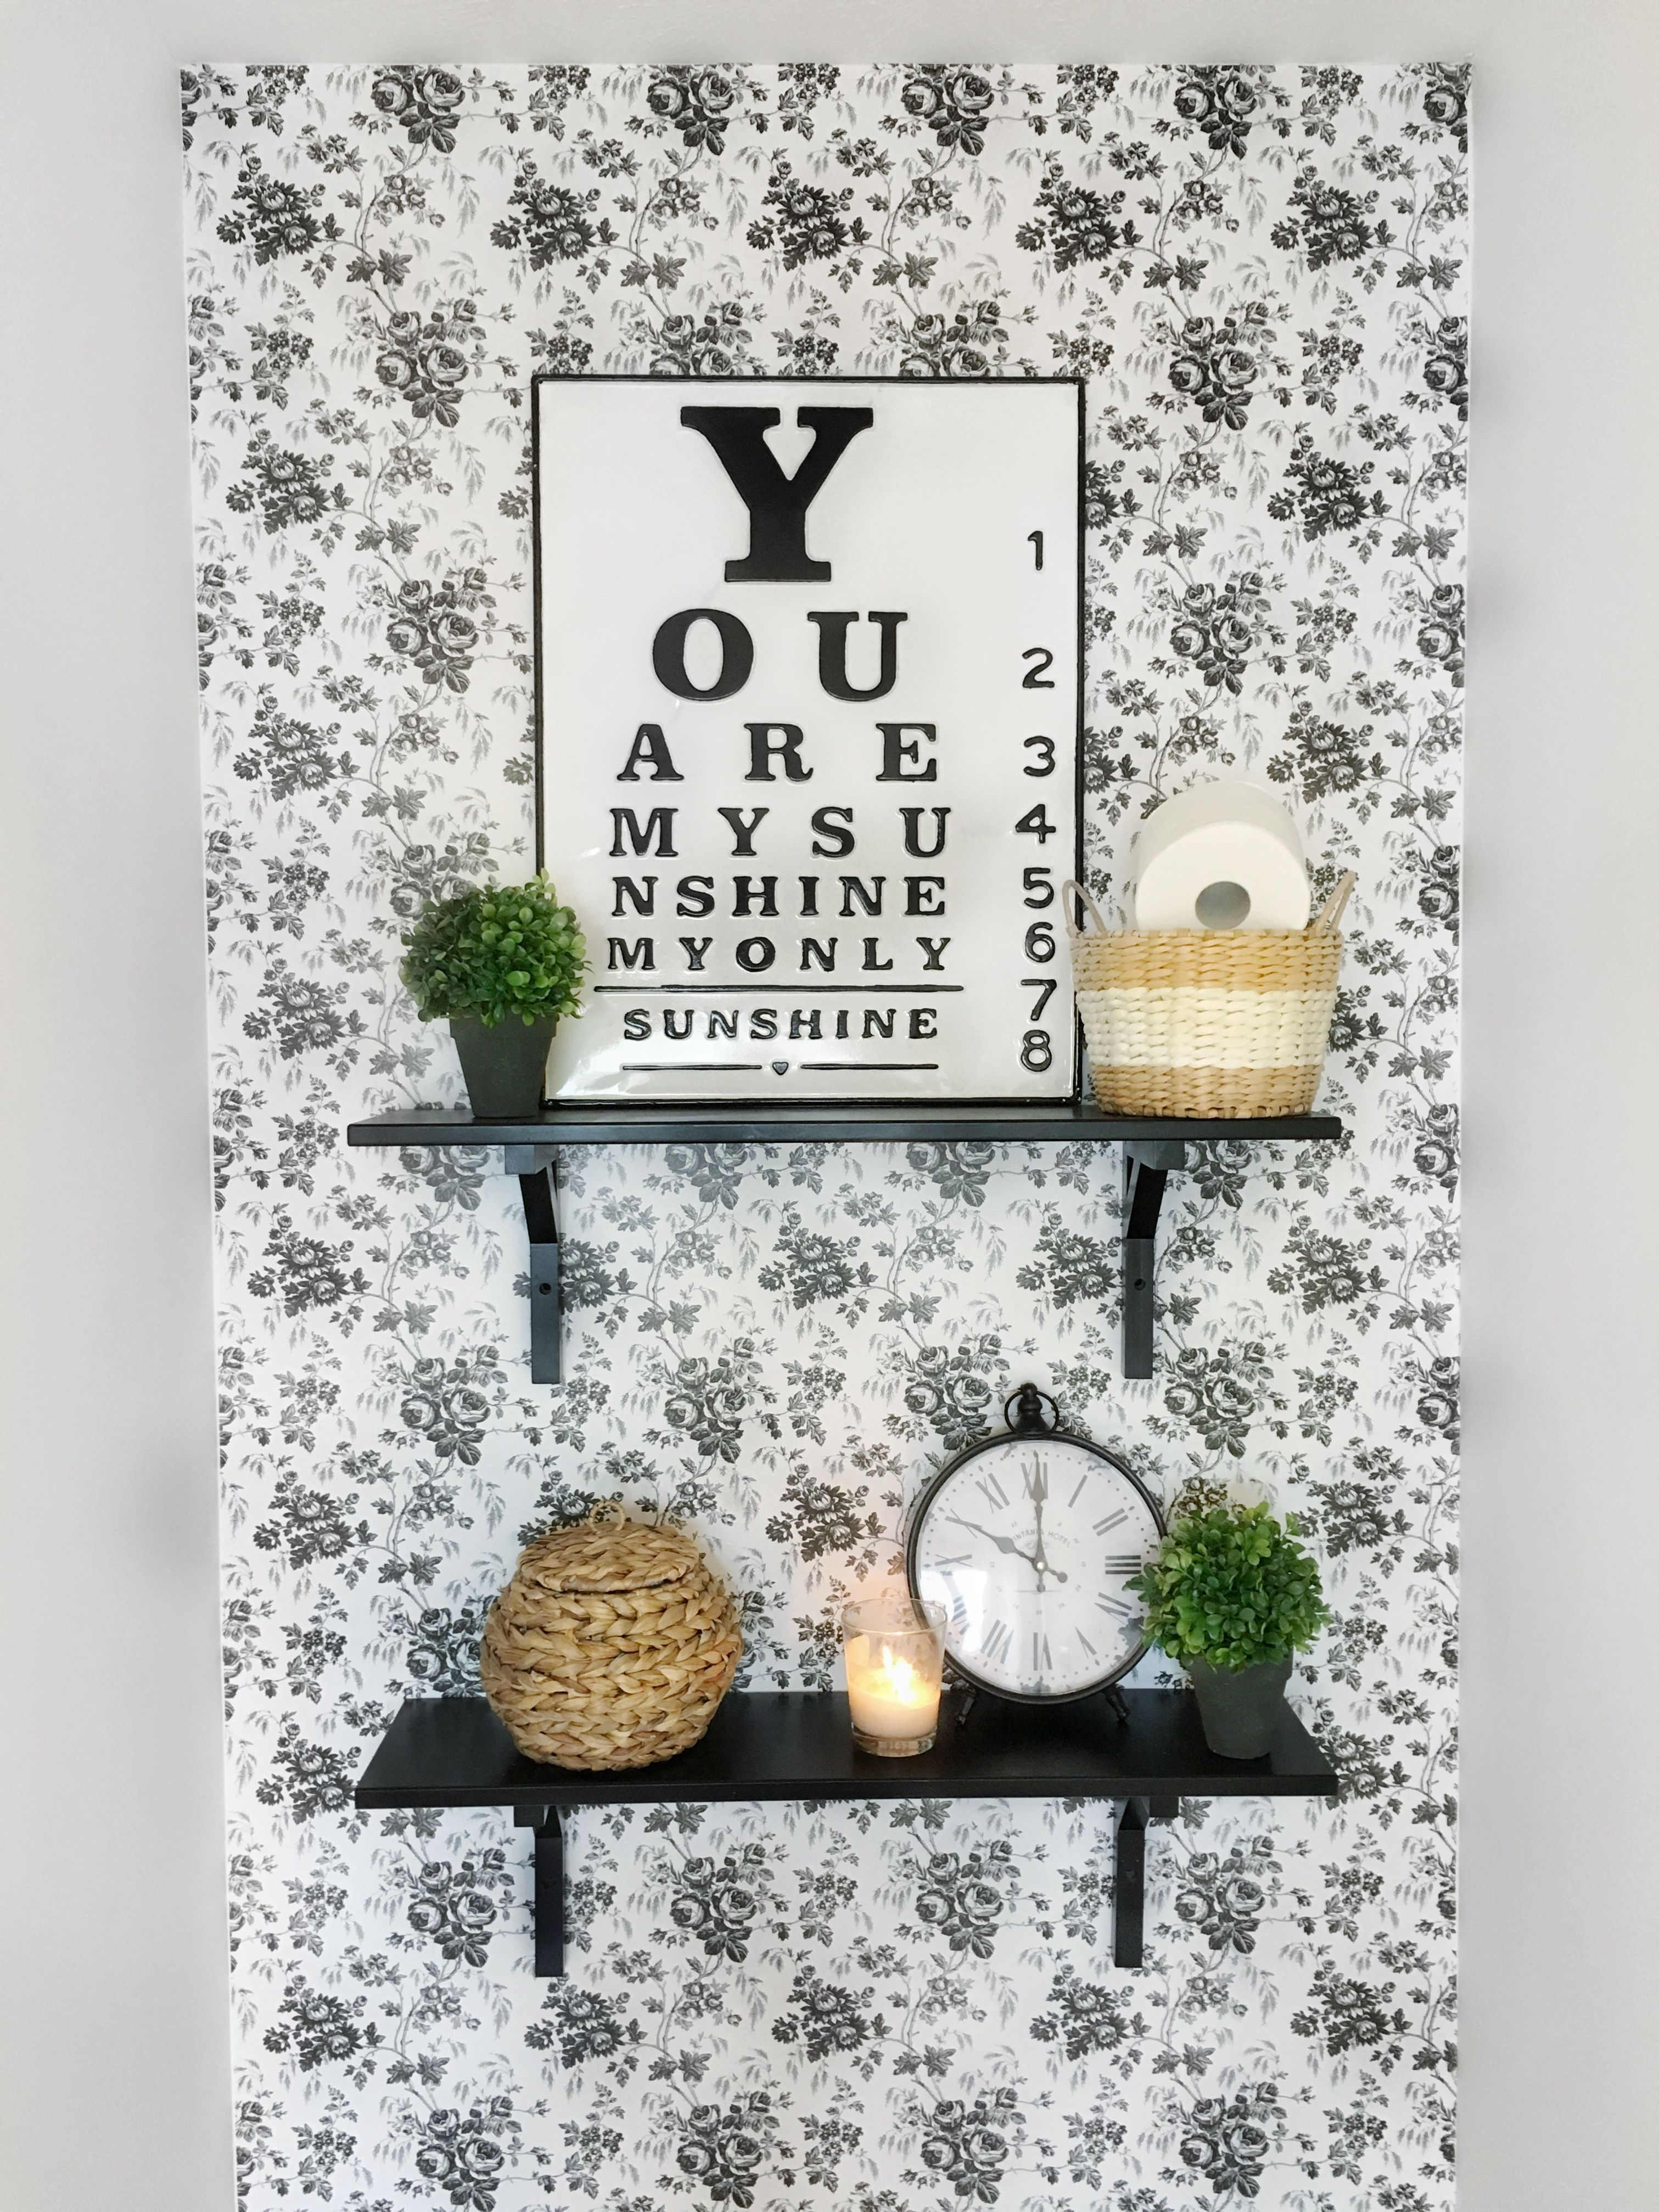 Tree Design Wallpaper Living Room: $6 Wallpaper Wall With Dollar Tree Contact Paper